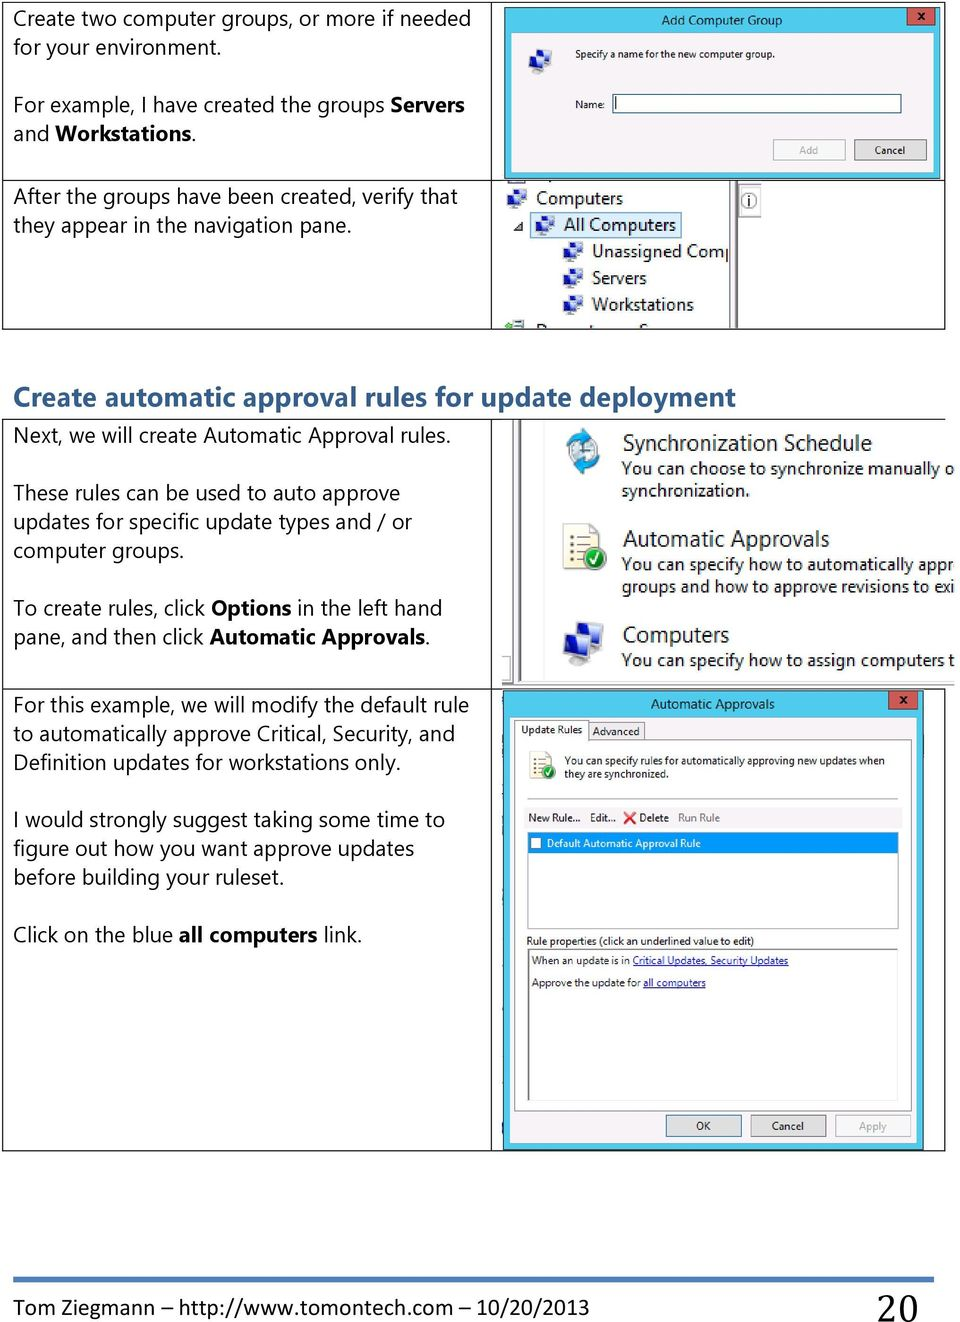 These rules can be used to auto approve updates for specific update types and / or computer groups. To create rules, click Options in the left hand pane, and then click Automatic Approvals.